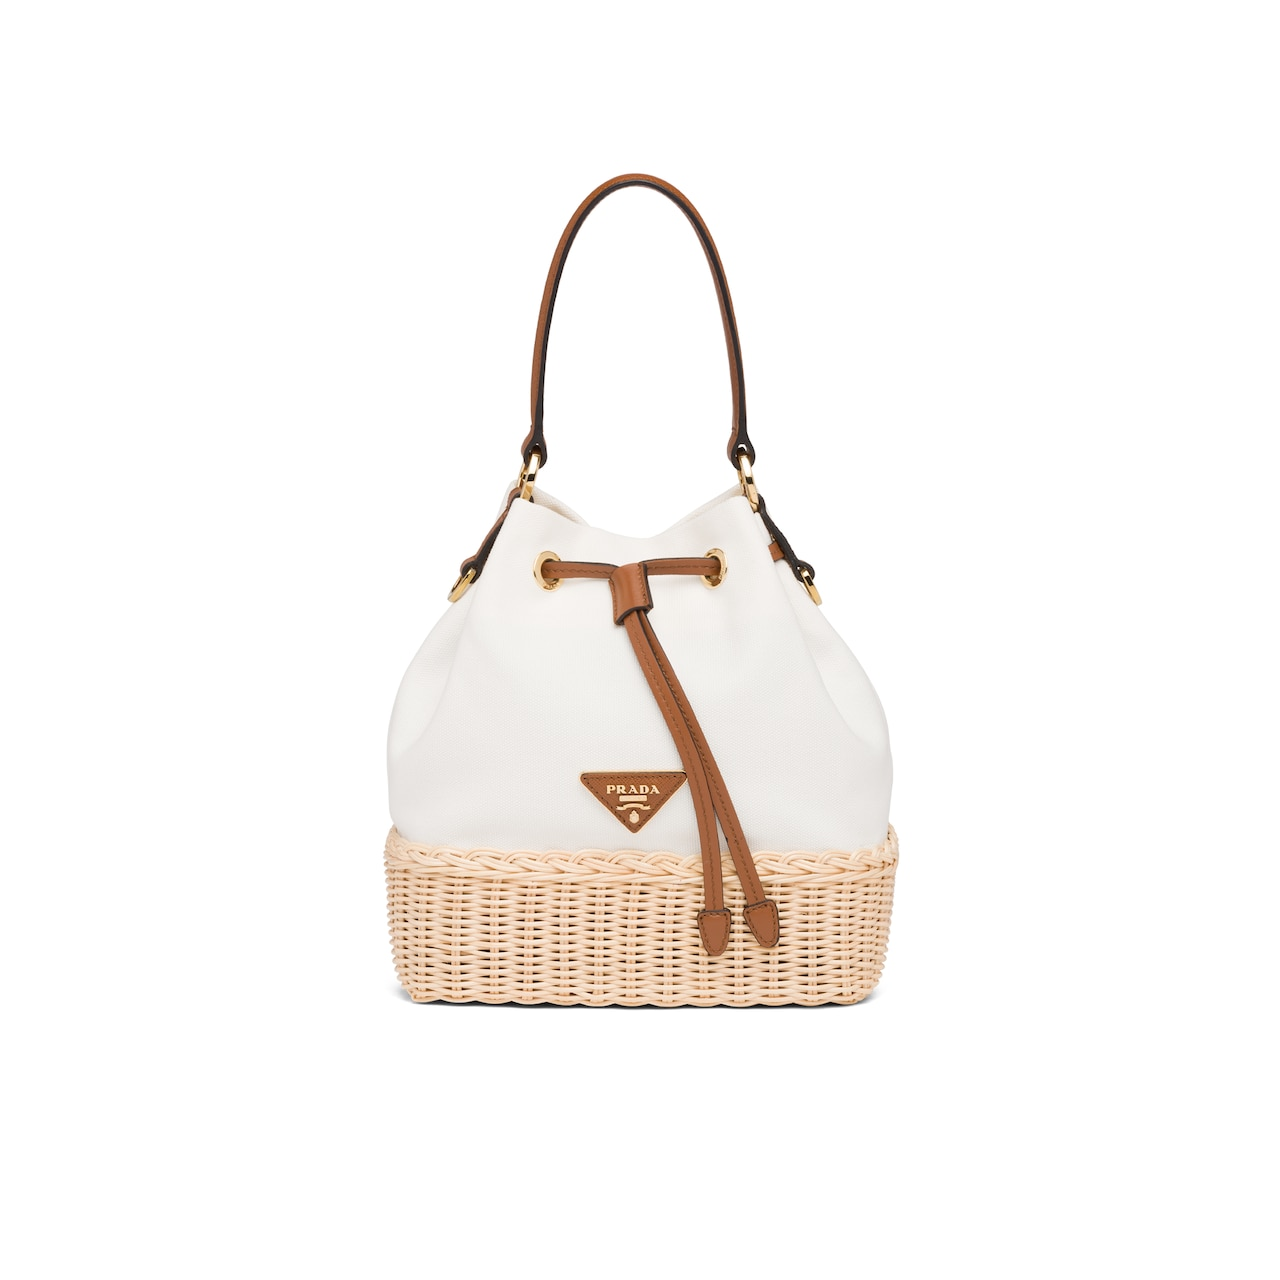 Prada Prada Plage wicker and canvas bucket bag 1